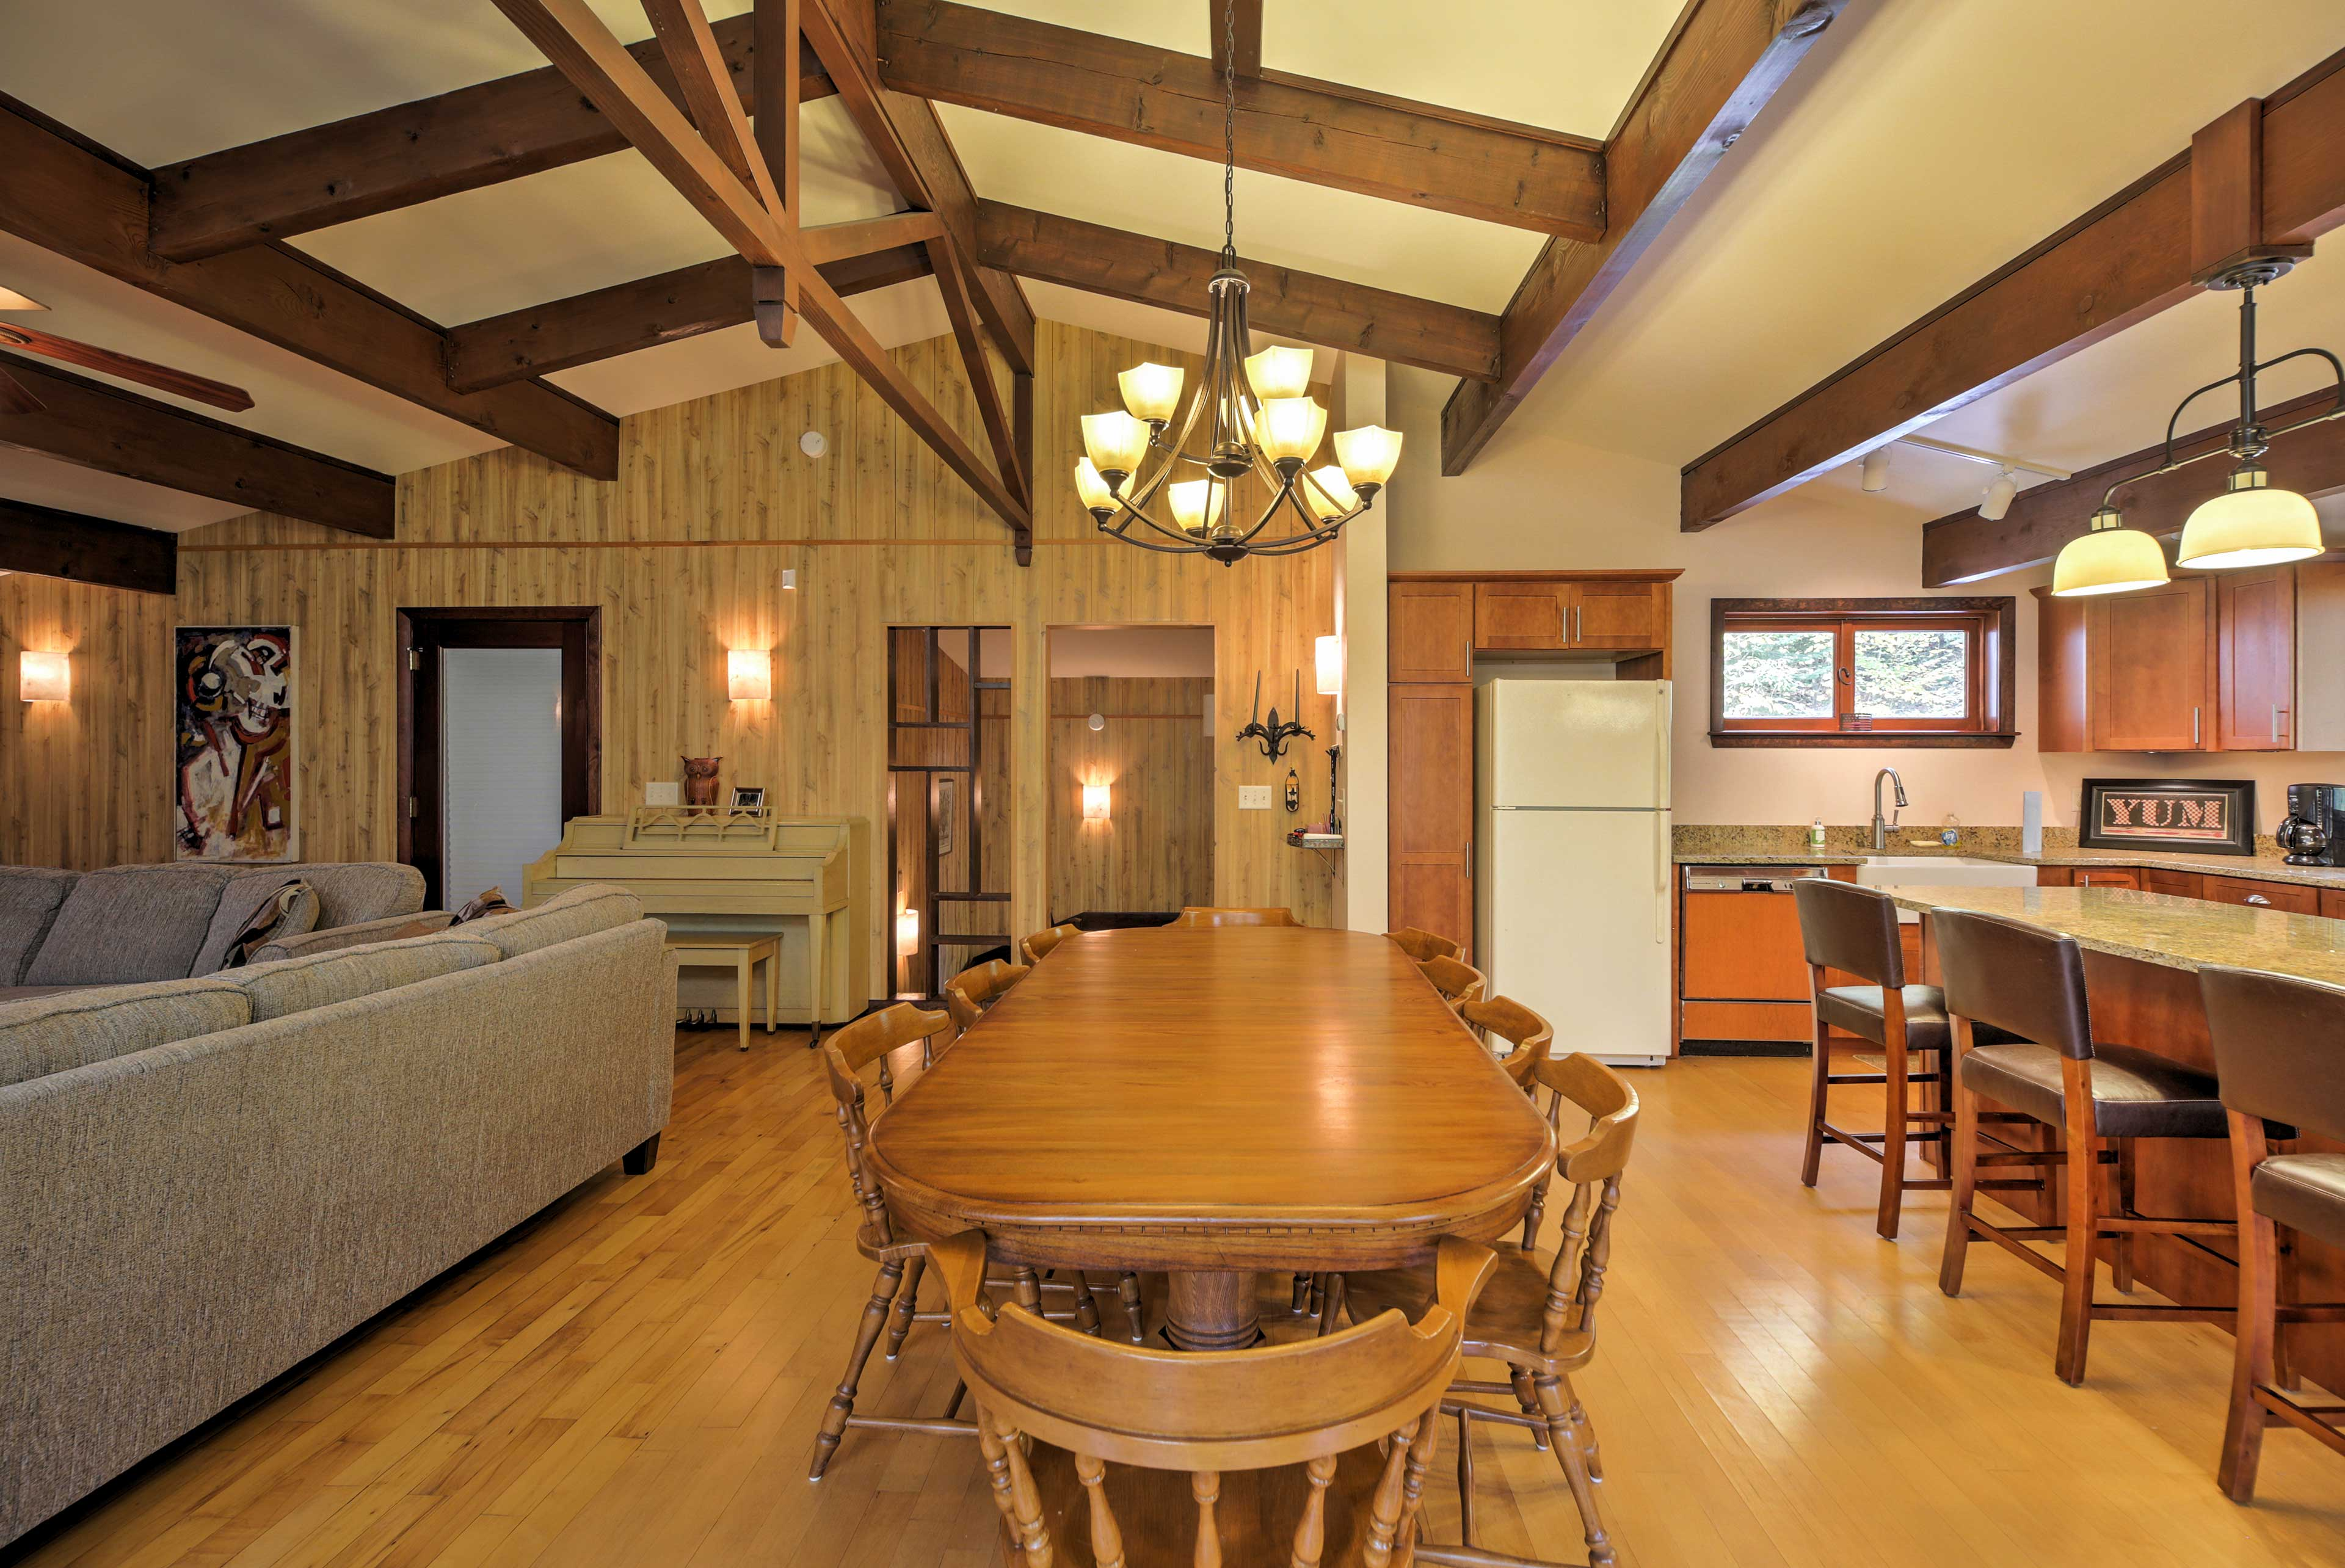 Dine in the grand room under the exposed beams as you enjoy good food!